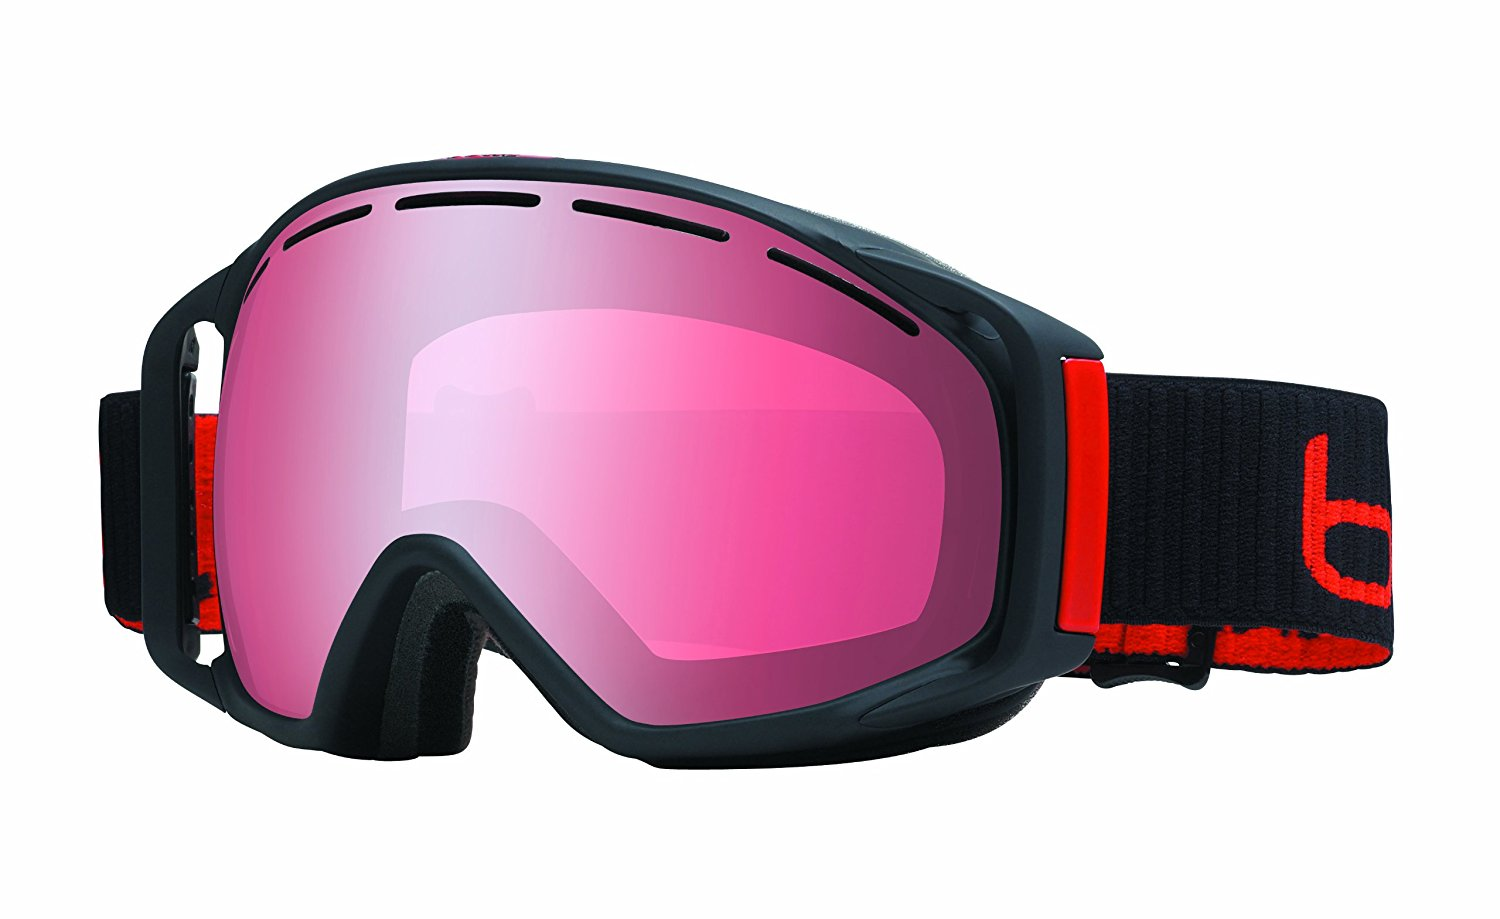 Bolle Skibrille amazon